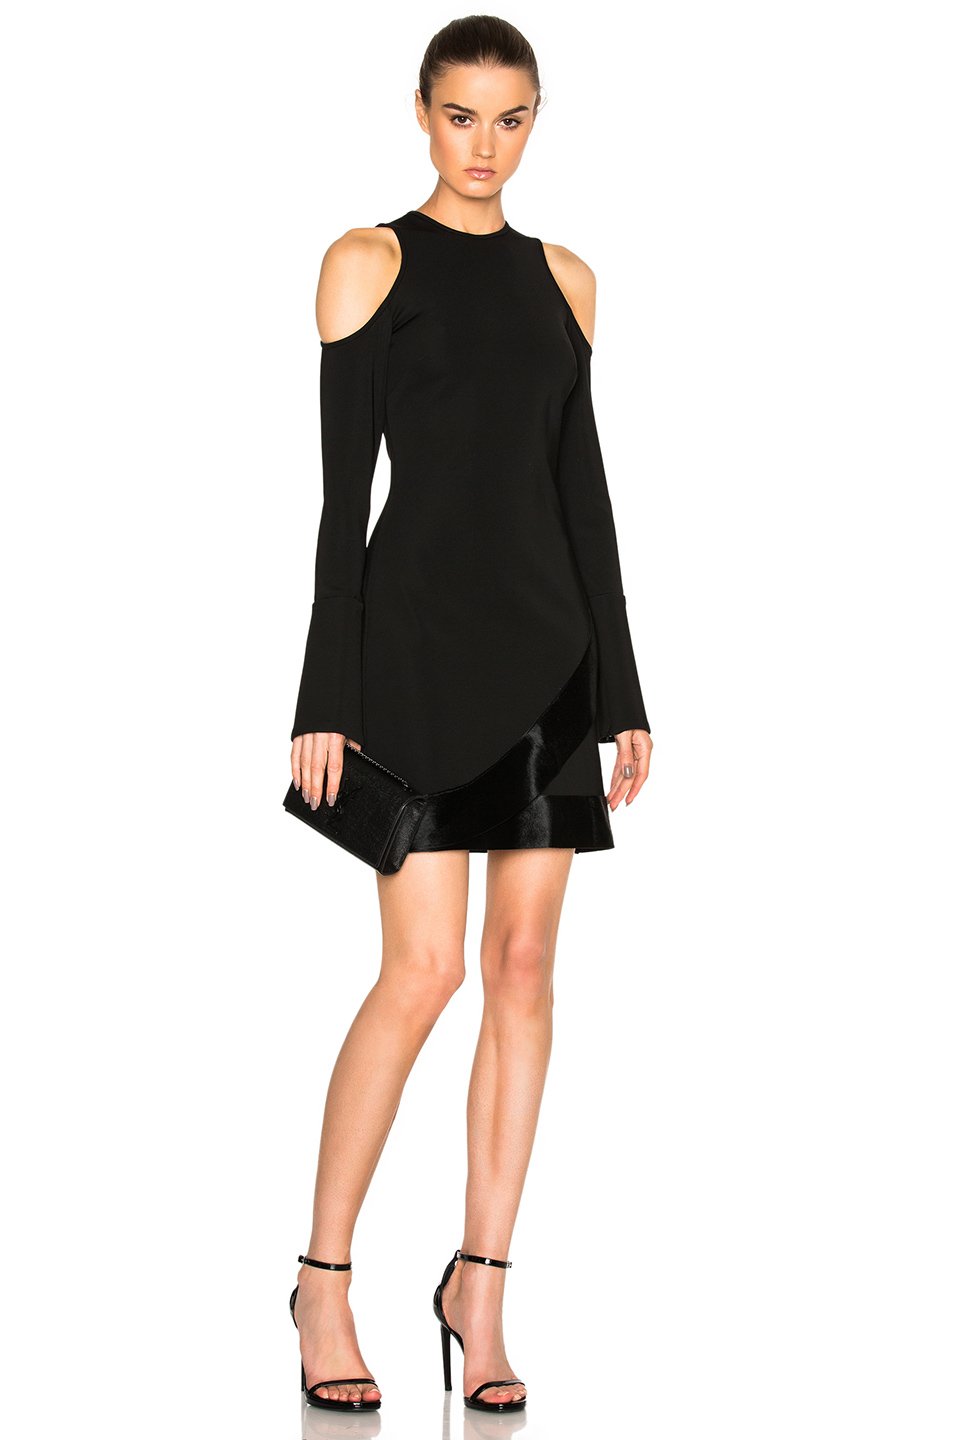 David Koma Open Shoulder Dress With Pony Hair in Black